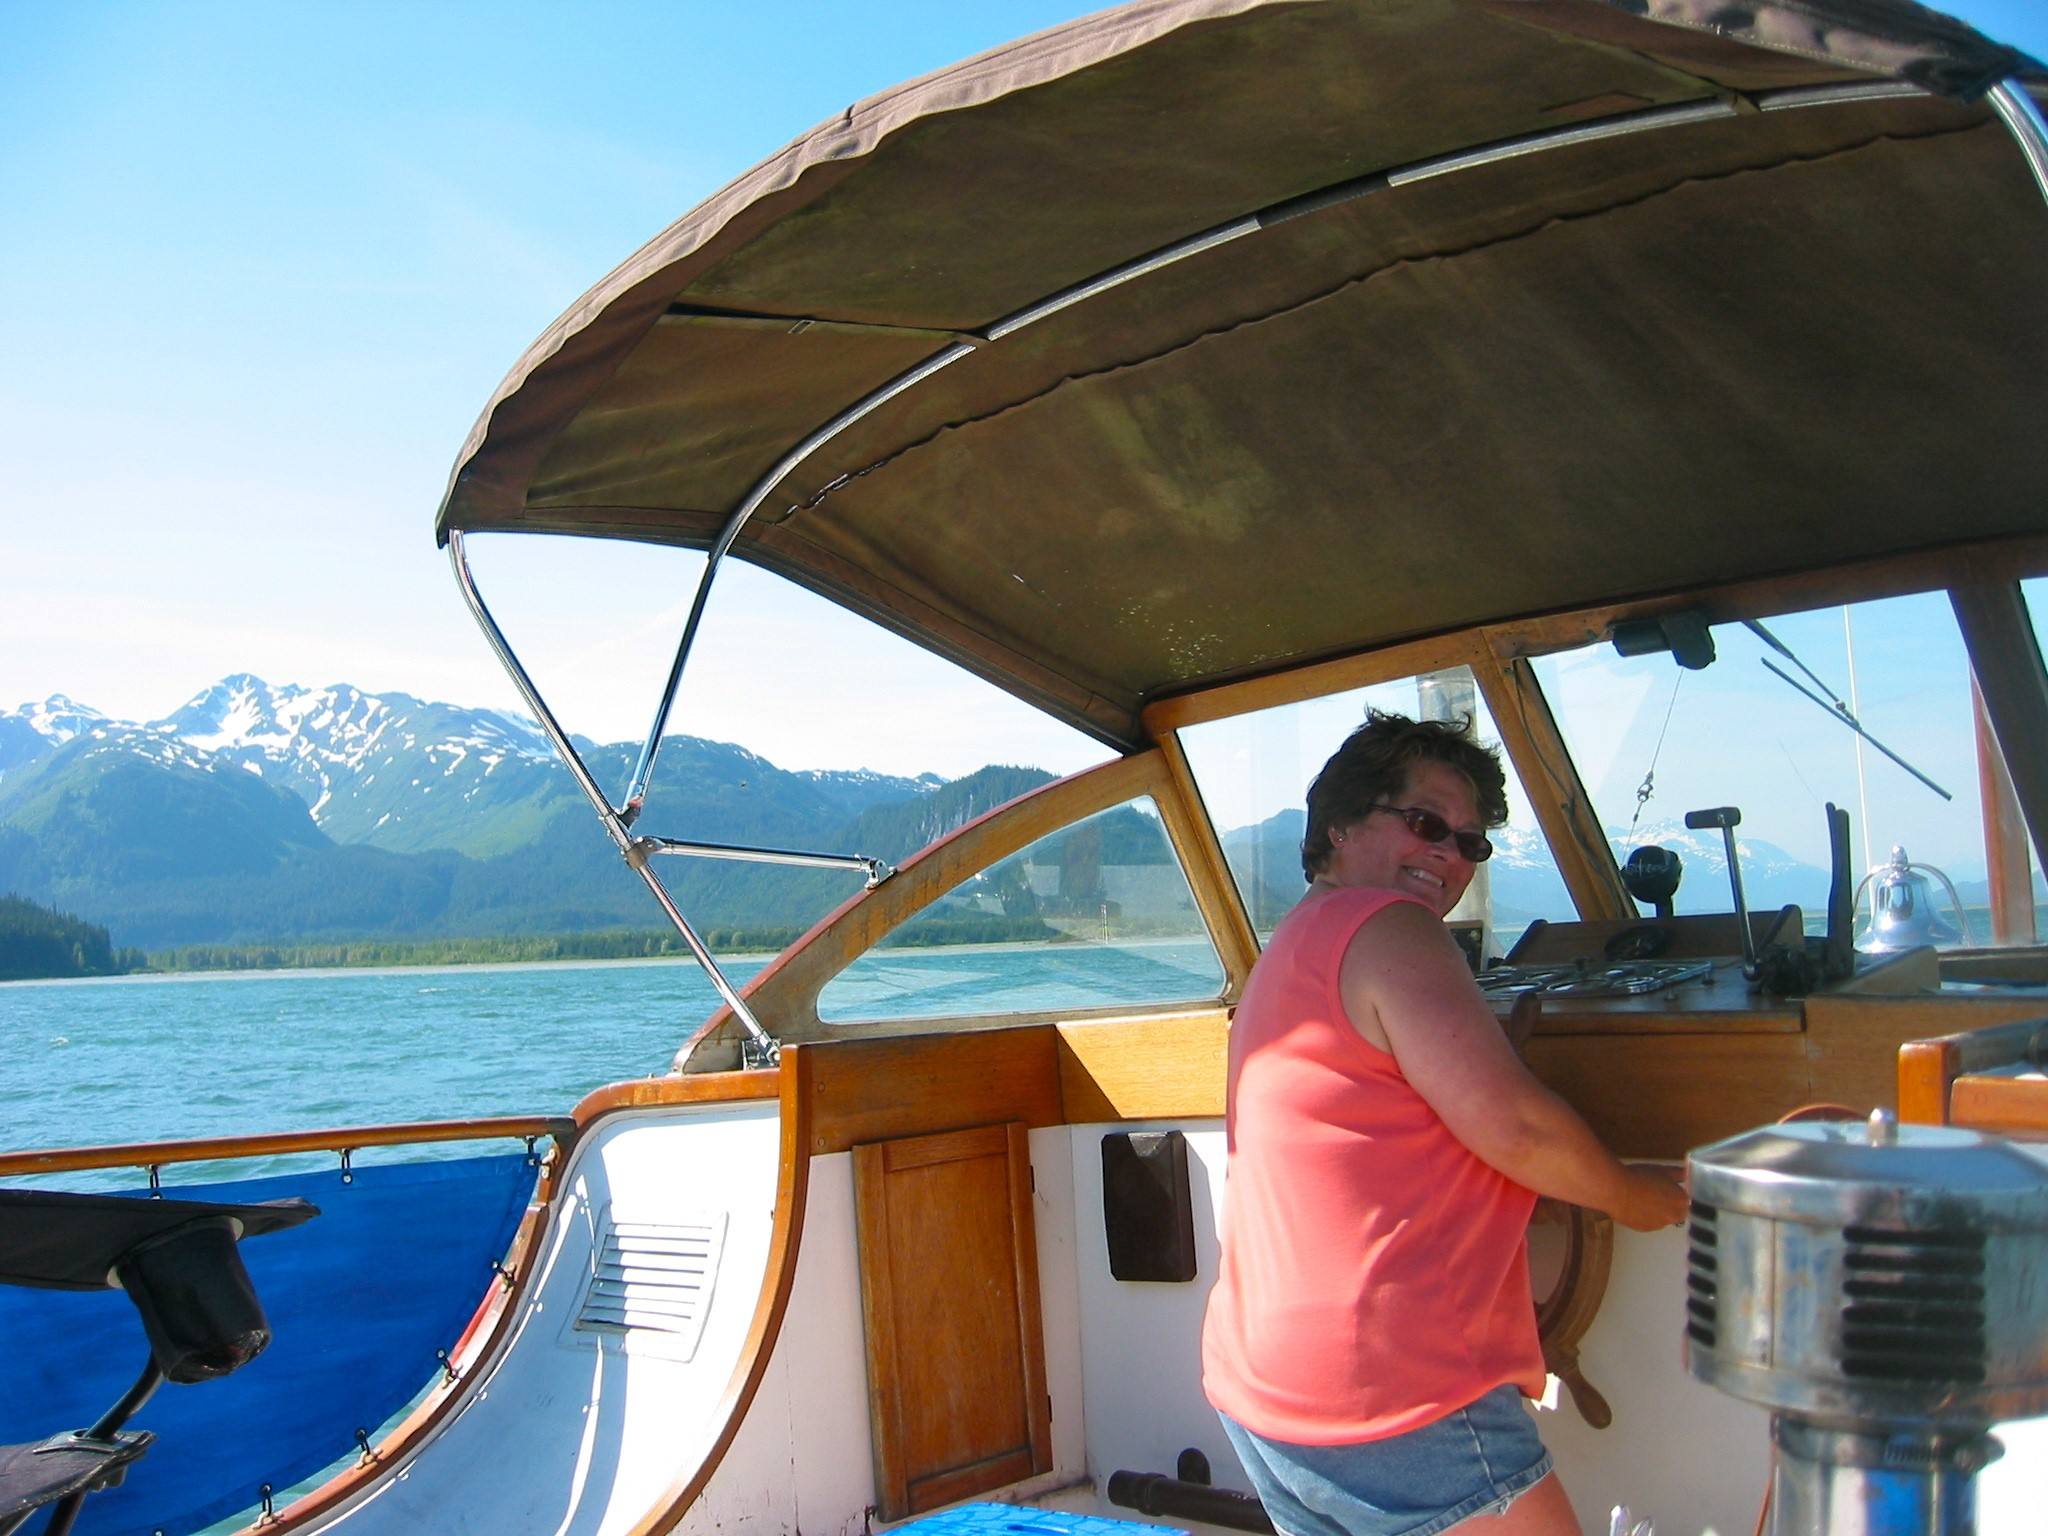 I am glad to have my clothes on, the author Dawn kostelnik at the helm of the Audrey Eleanor motoring from Juneau Alaska to Haines Alaska